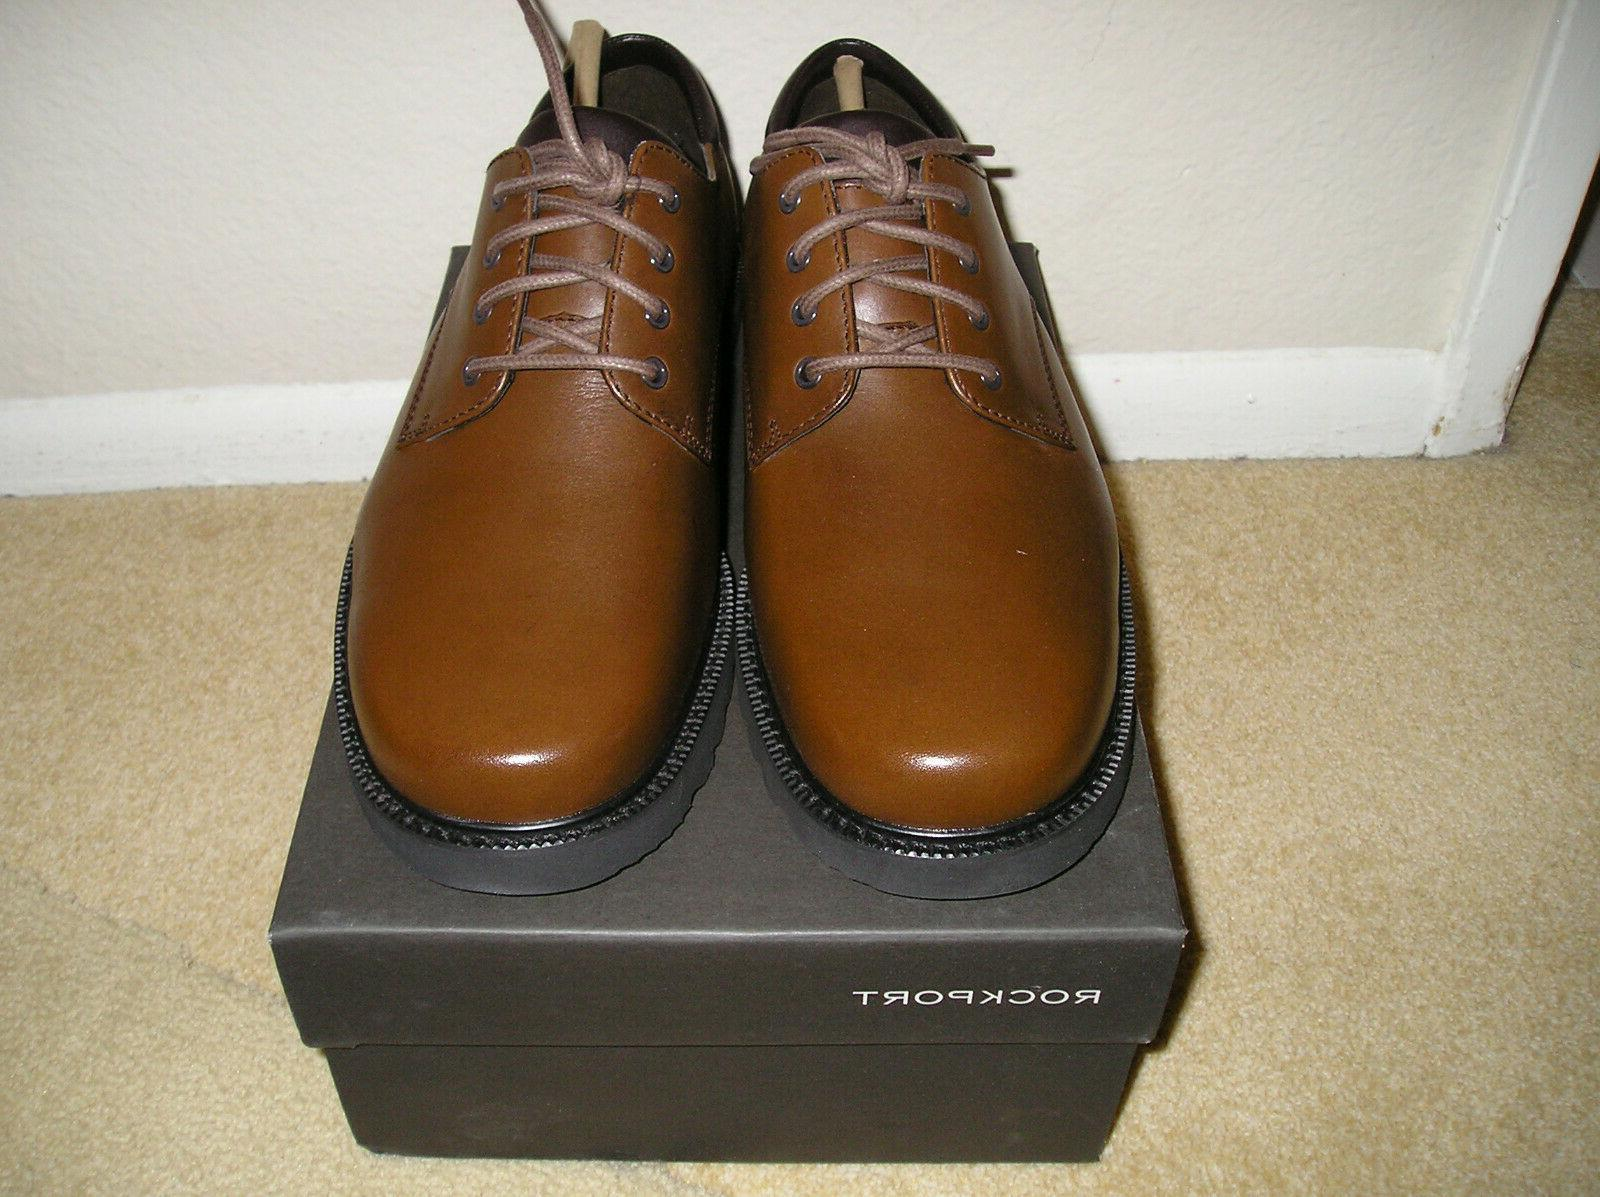 NIB ROCKPORT BROWN LEATHER CASUAL DRESS SHOES SIZE 9.5